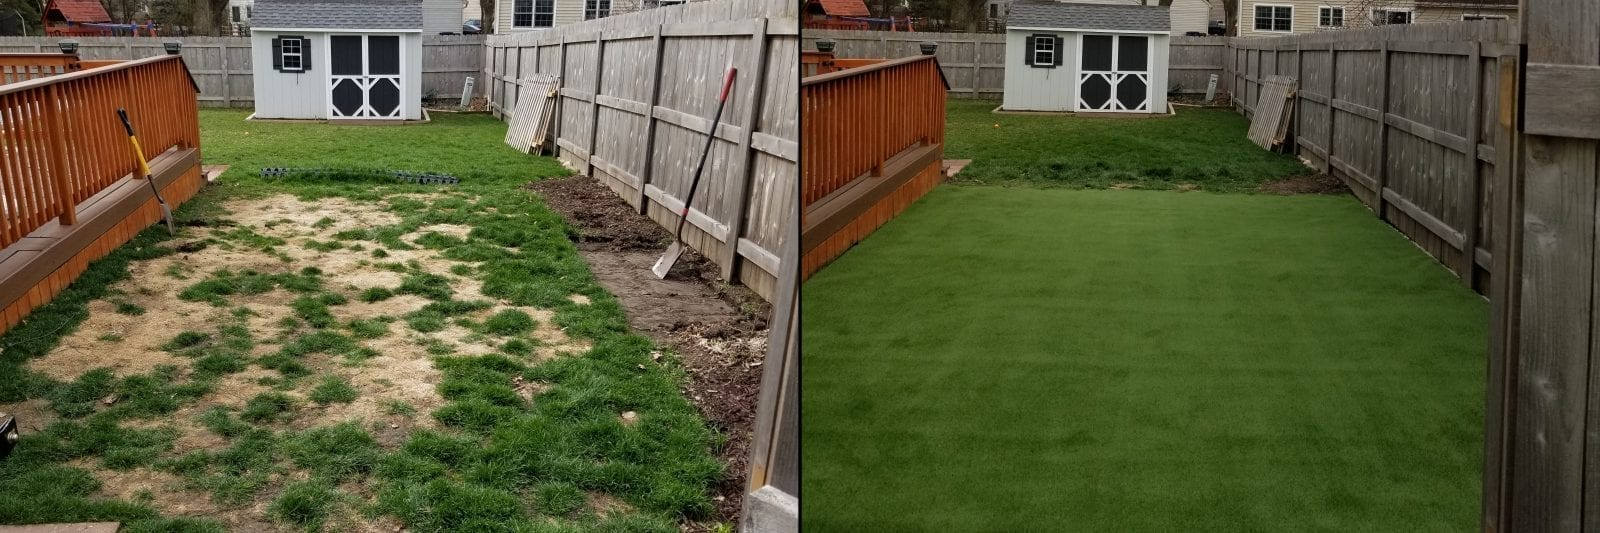 Before and After of Residential Lawn